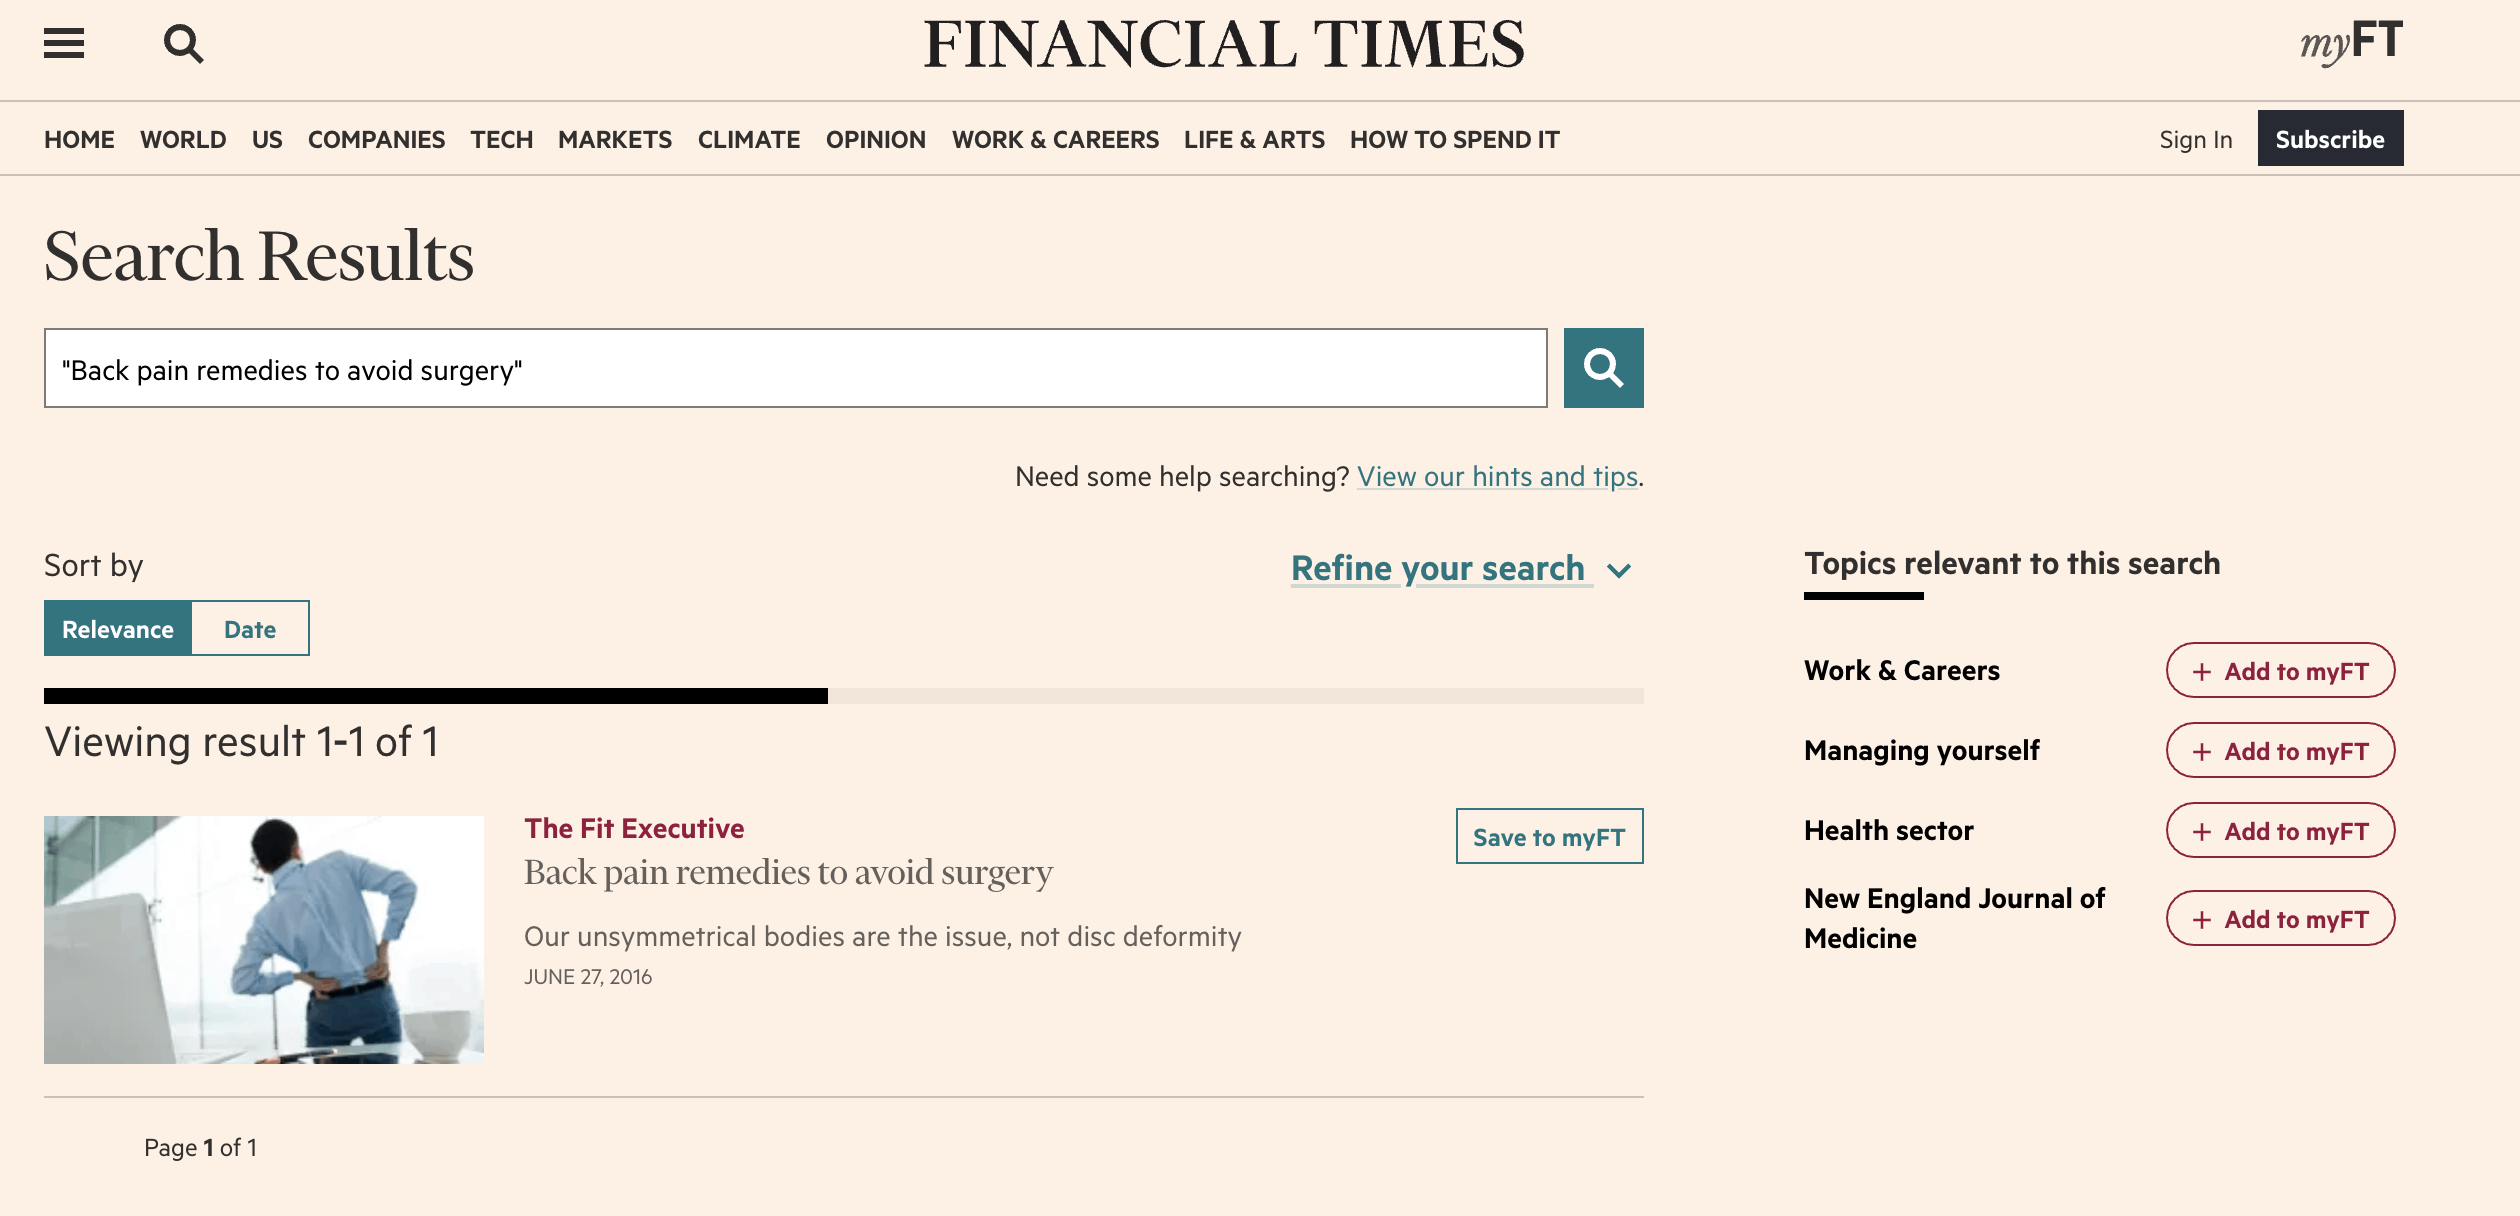 Financial Times The Fit Executive